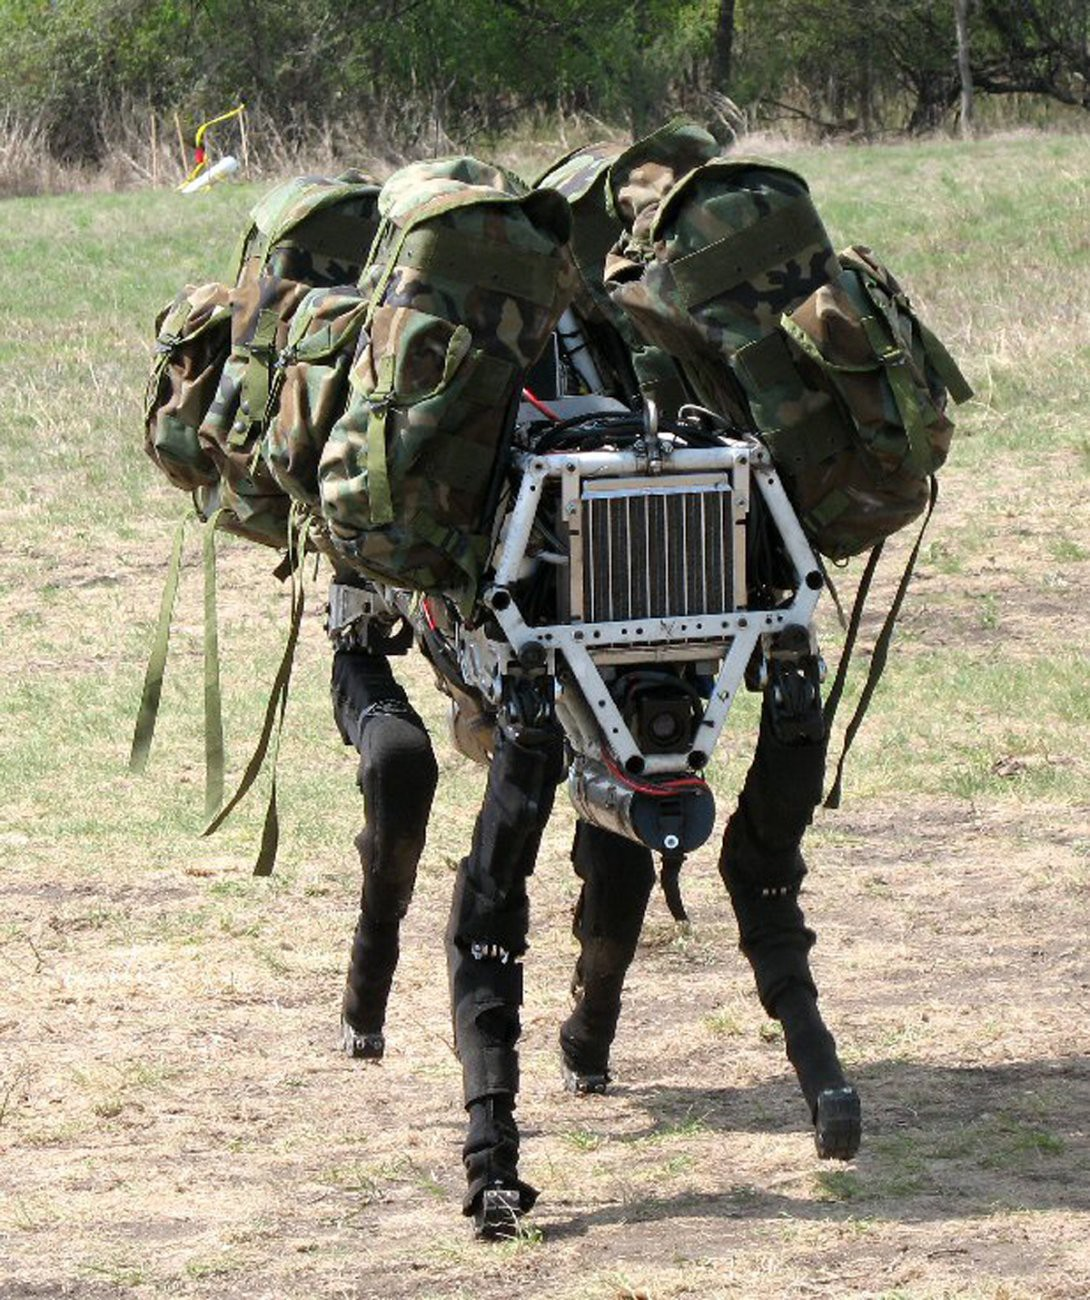 Robot with four legs carrying duffle bags for soldiers in the field.